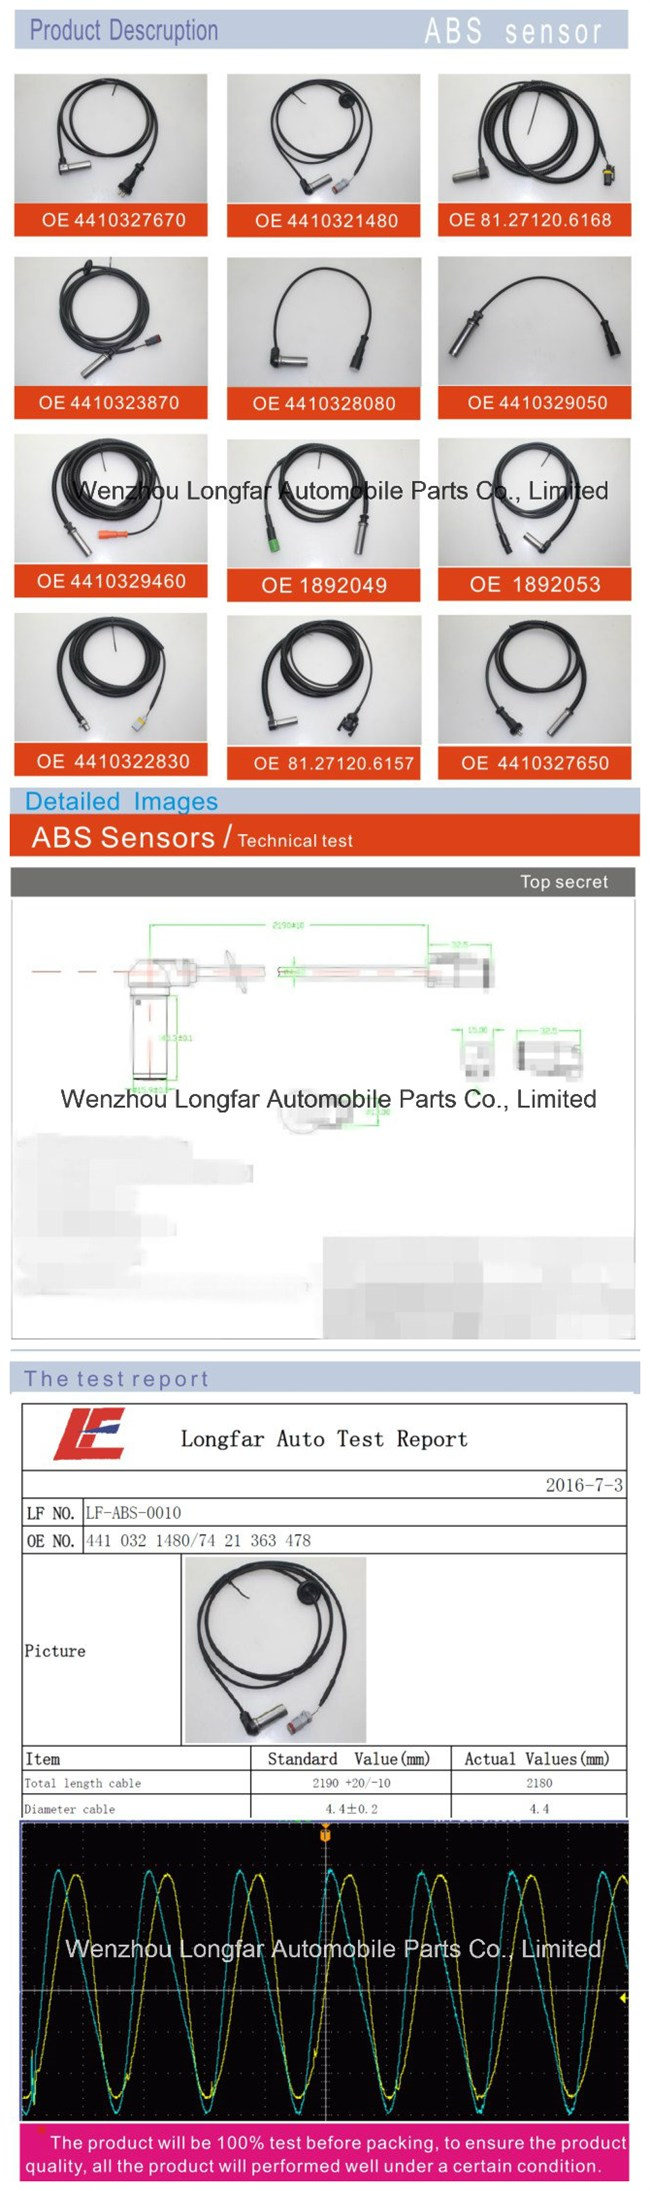 ABS Sensor Anti-Lock Braking System Transducer Indicator 4410323470 209159706.6191350 10 457 861213634887421363488 for Daf Iveco Renault Scania Volvo Truck